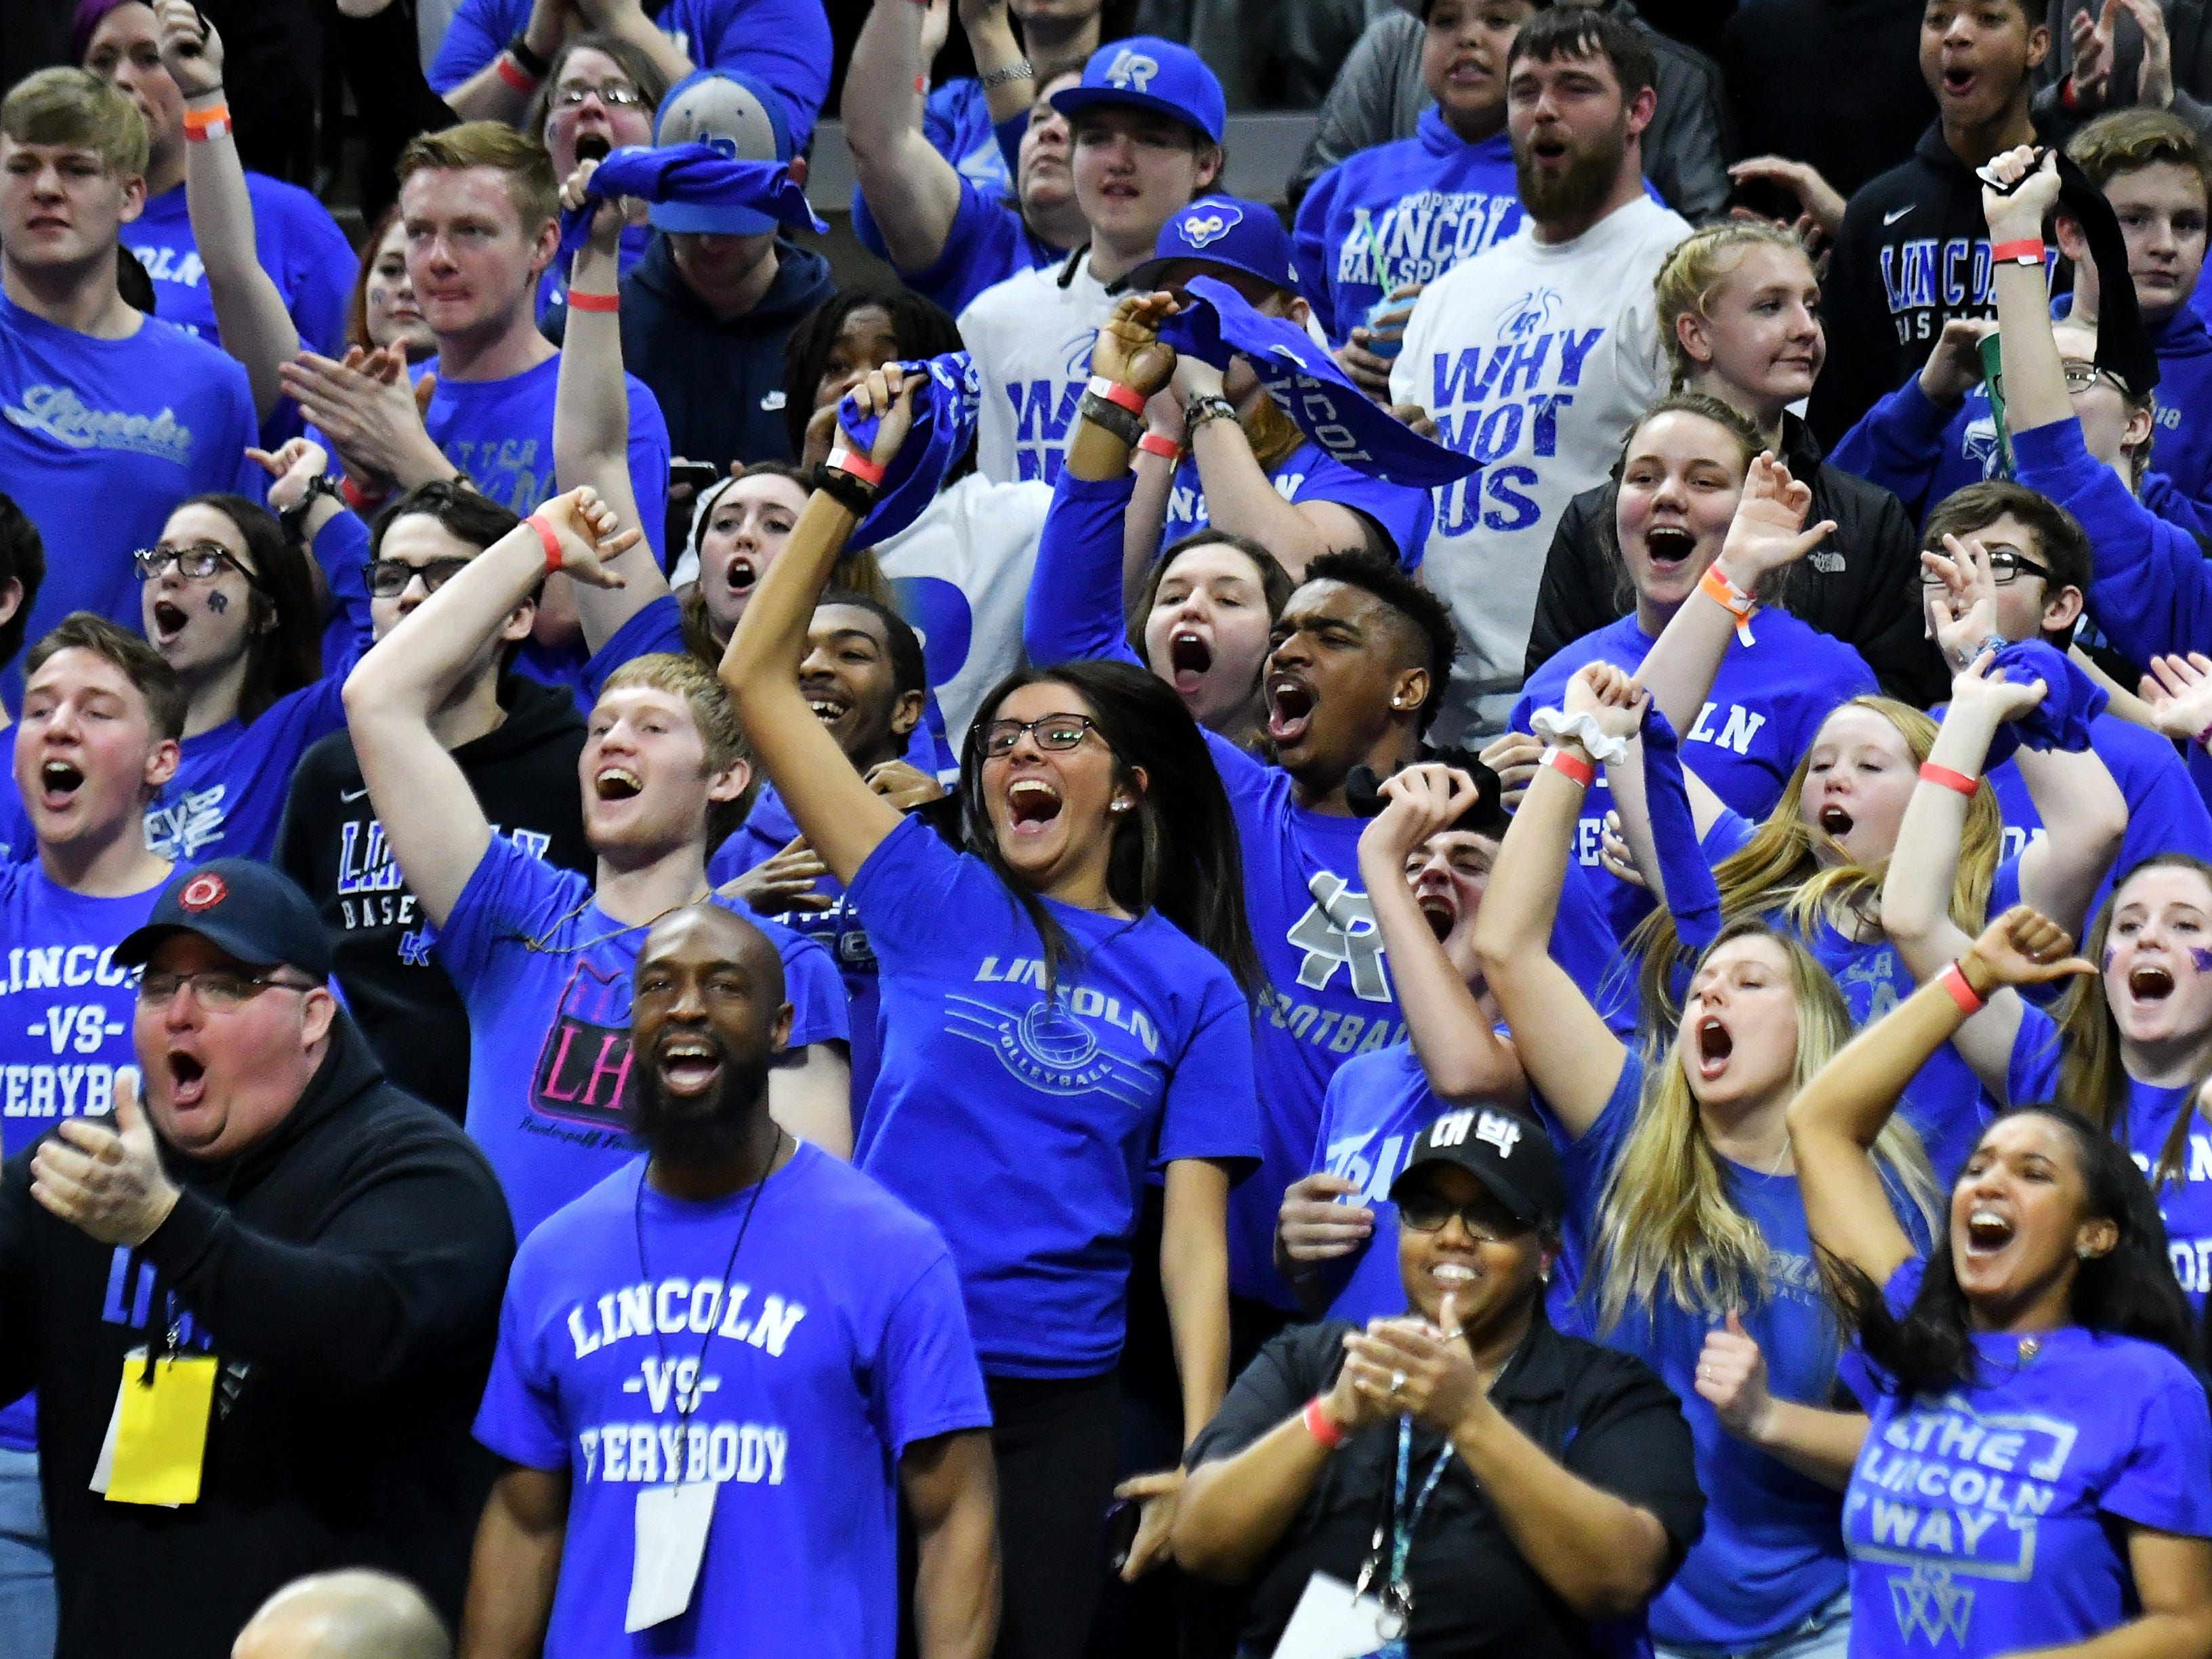 Ypsilanti Lincoln fans make some noise in the second half.